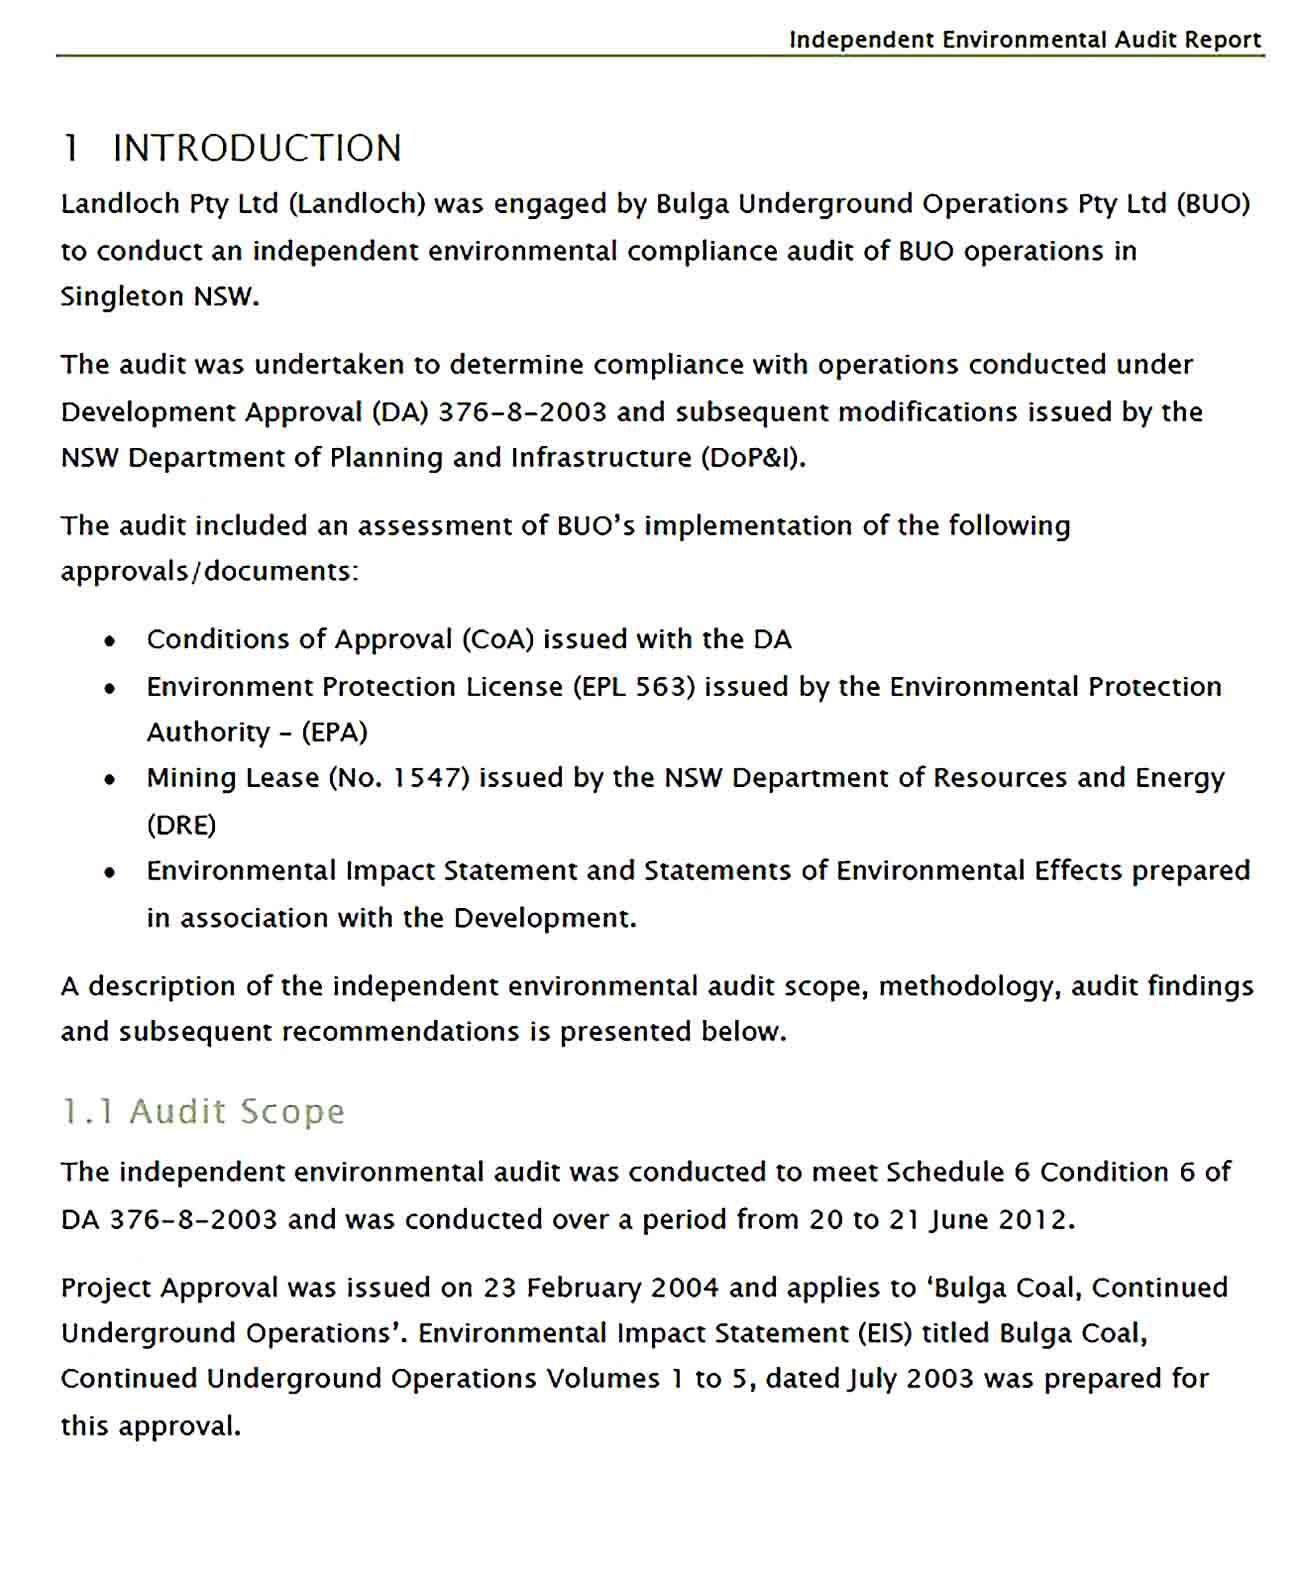 Sample Independent Environmental Audit Report